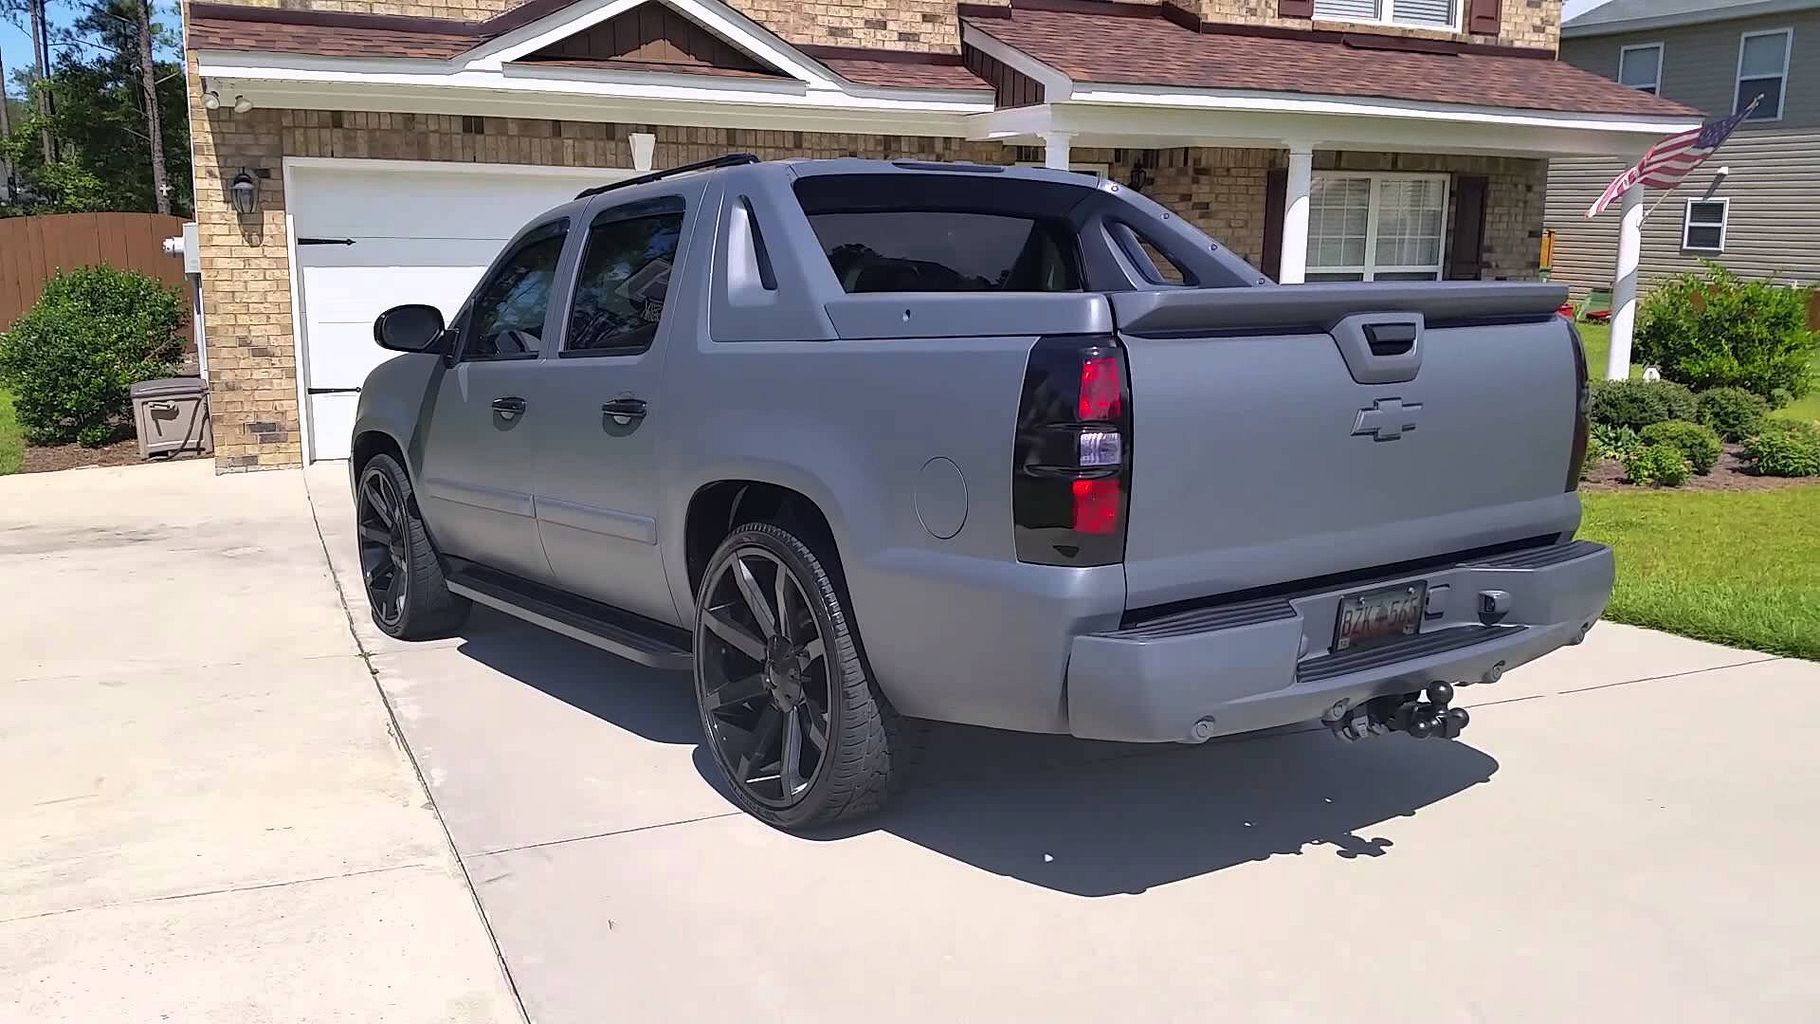 The 25 best chevy avalanche ideas on pinterest avalanche truck chevy silverado rims and 2007 suburban